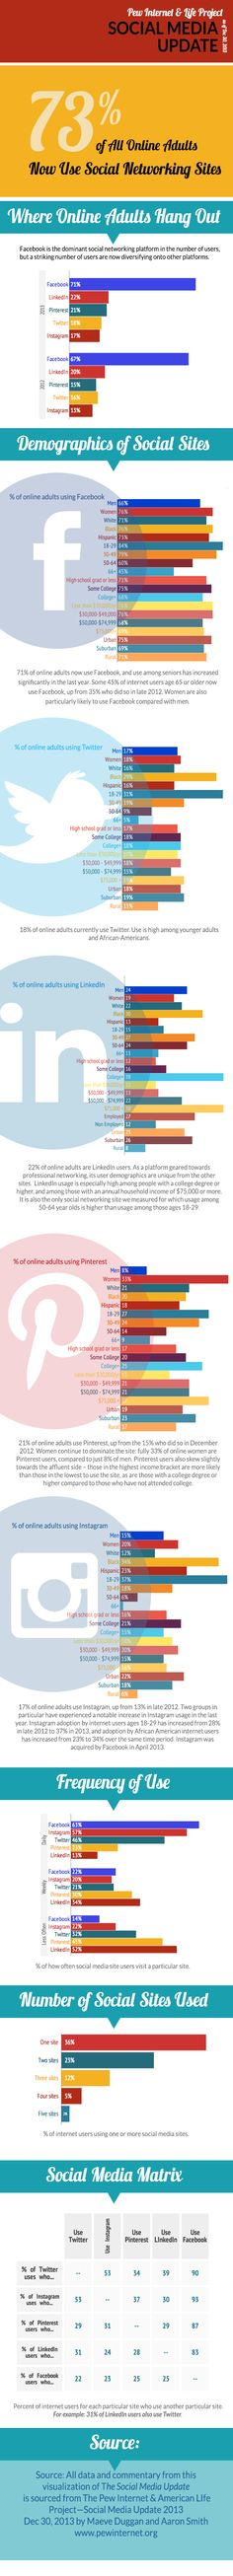 Where do your prospects hang out on social media? Infographic.